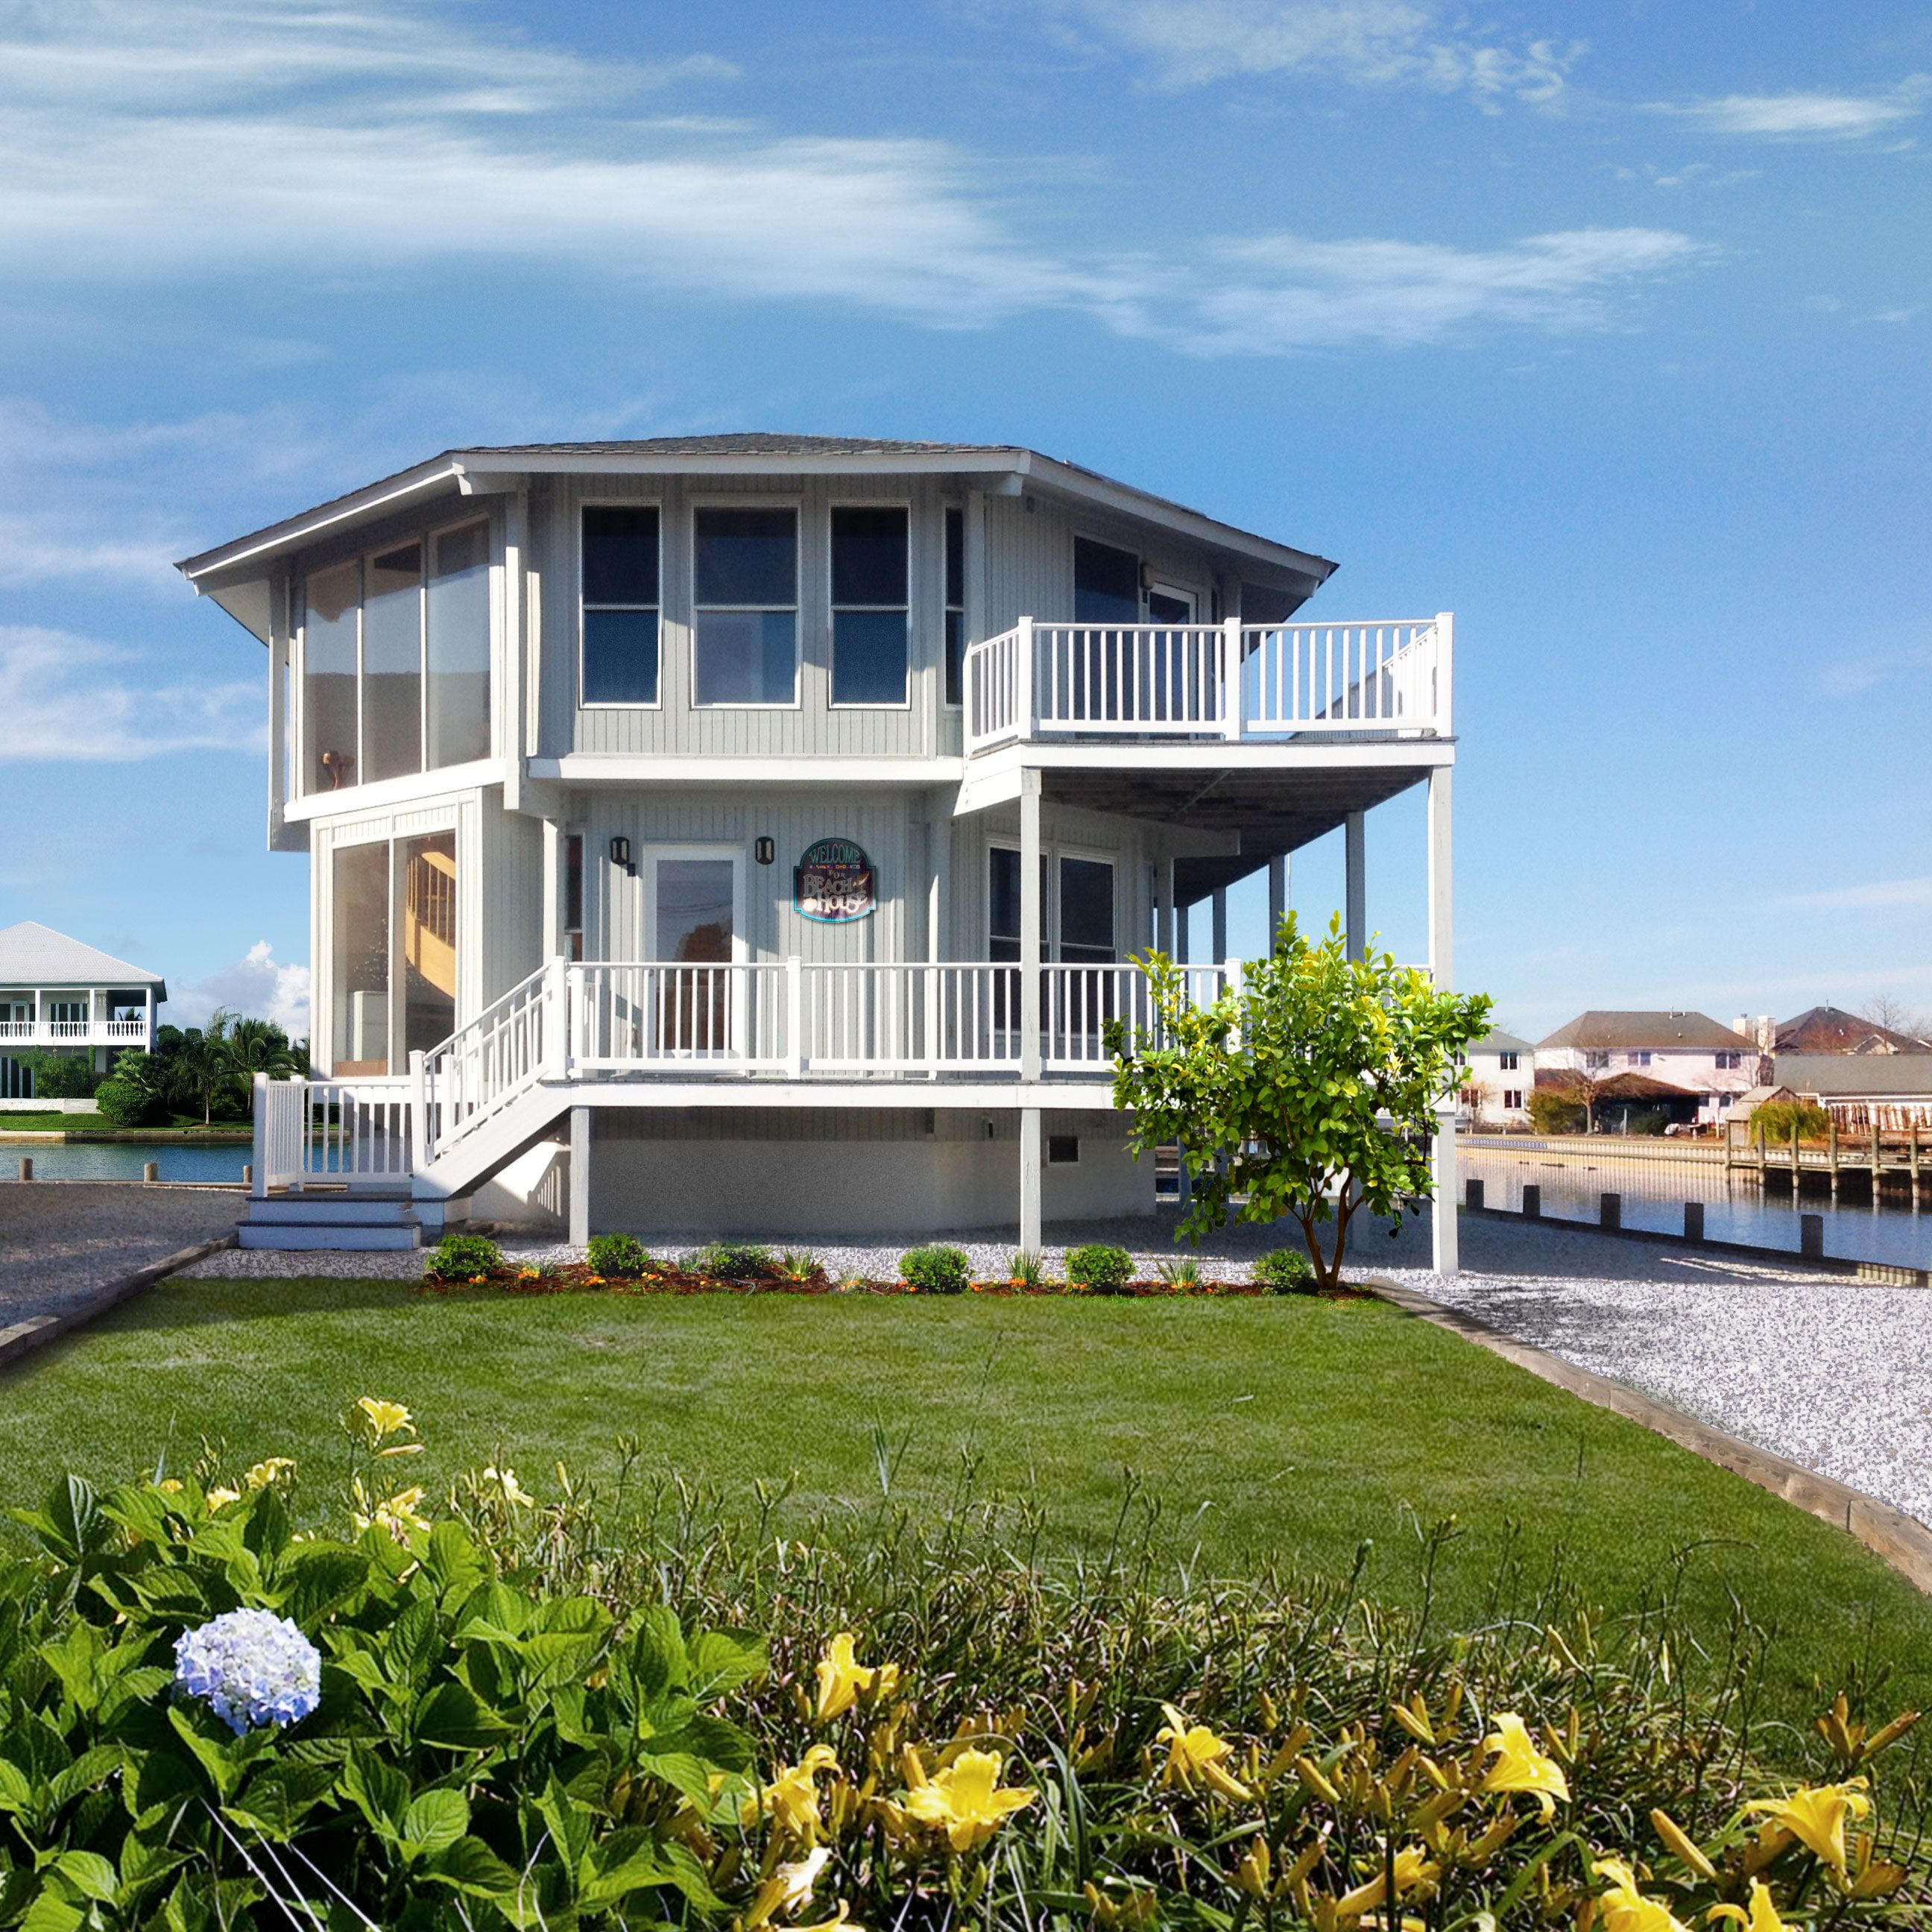 This Slightly Elevated Two Story Home Built On The Intracoastal Waterway Features 360 Degree Views On Both Le Coastal House Plans House On Stilts House Plans